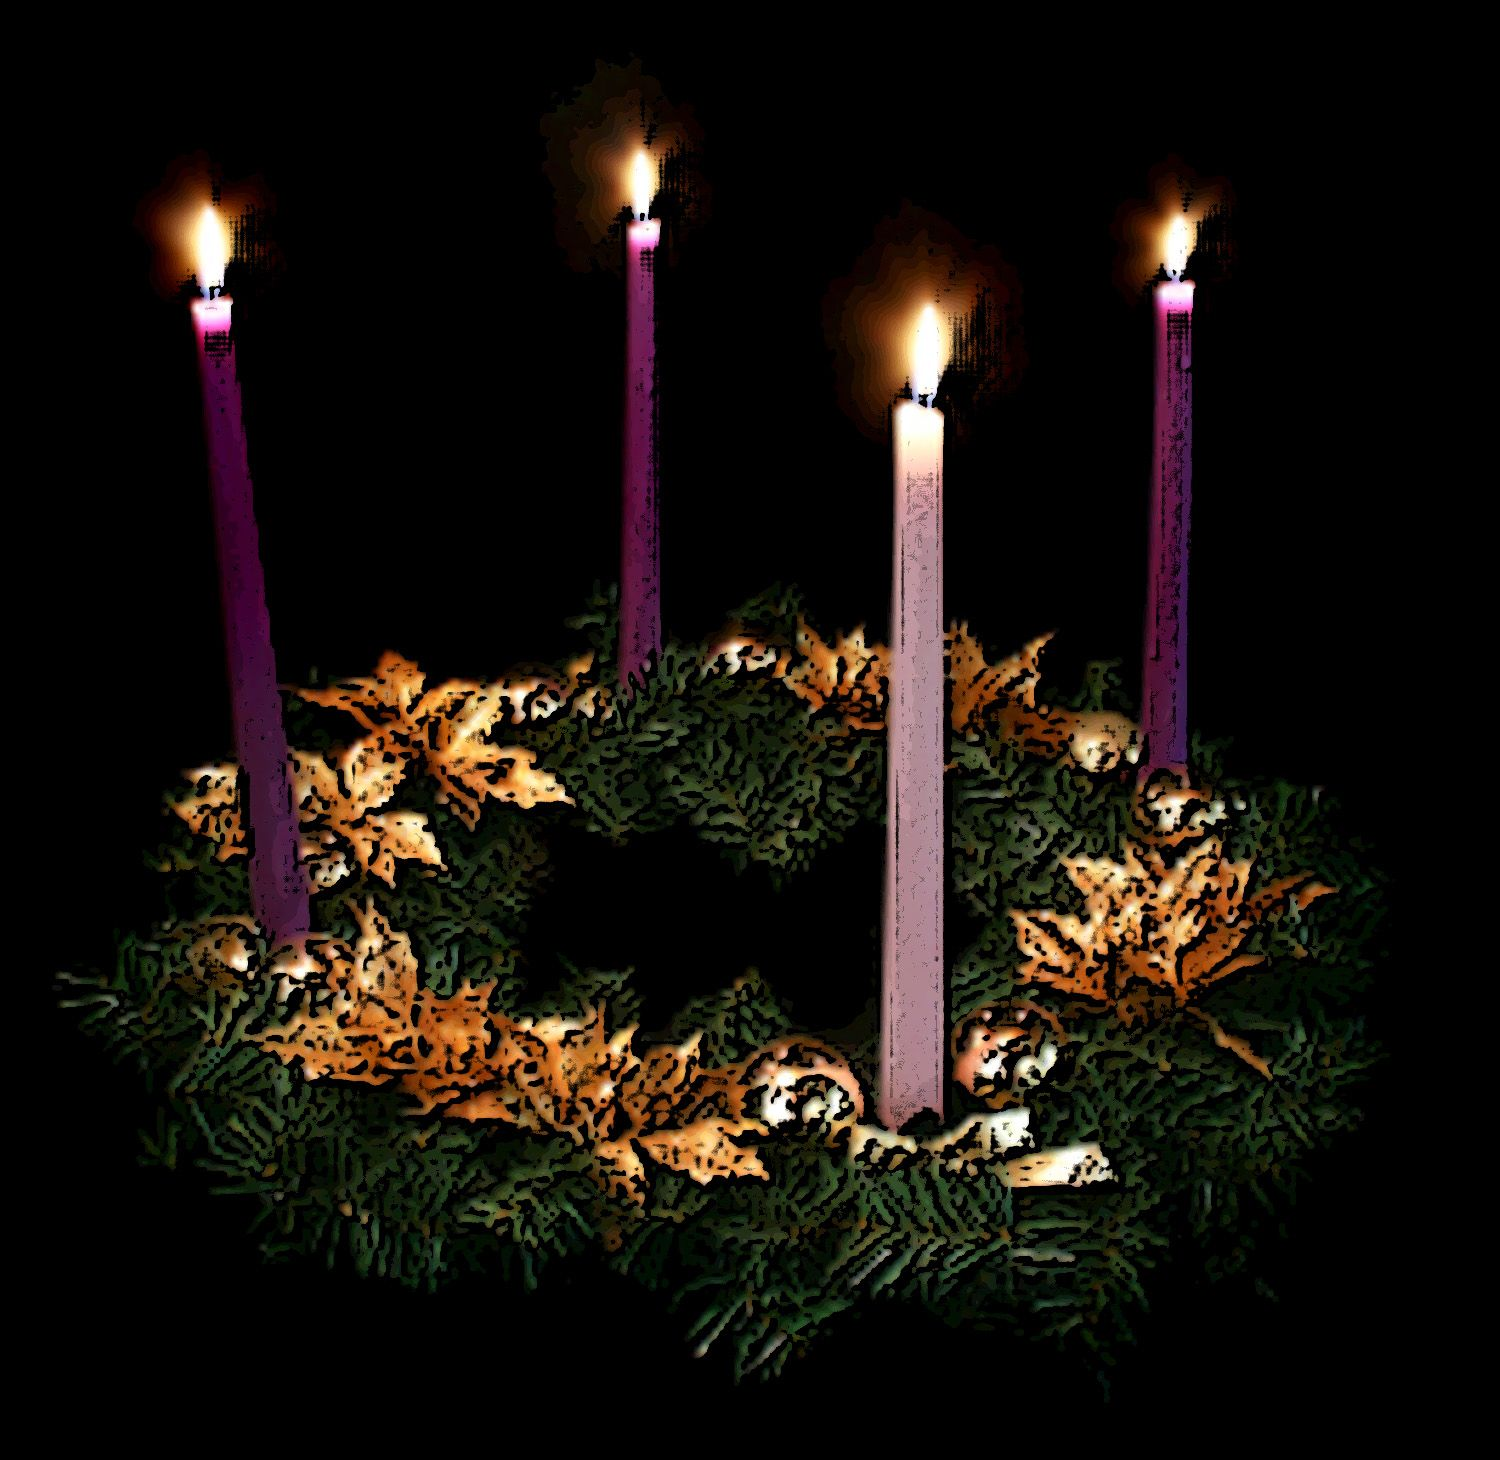 The Advent Wreath Provided Some Mood Lighting For What